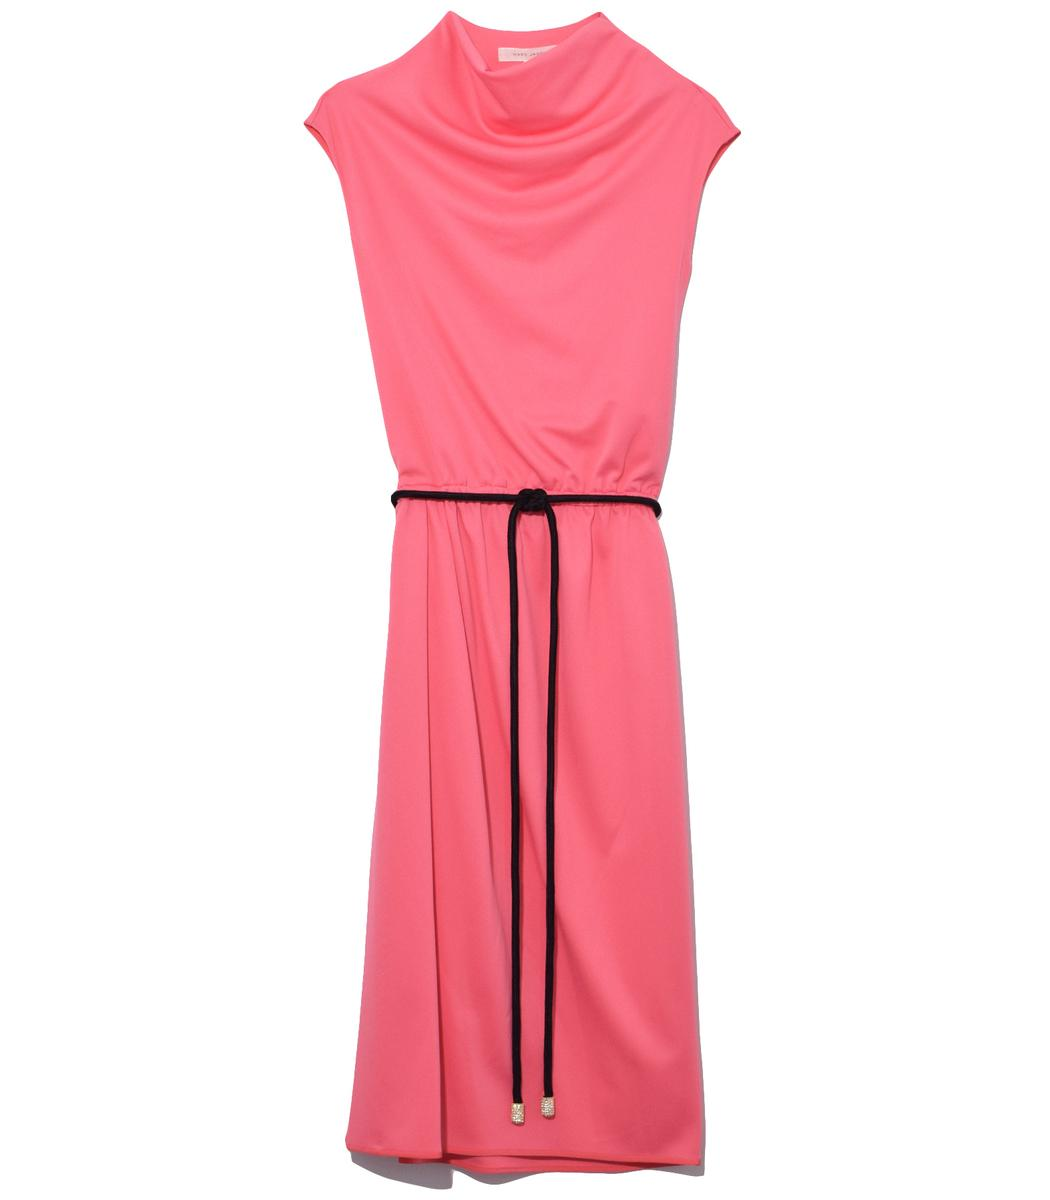 Draped Cowl Neck Dress: Marc Jacobs Draped Cowl Neck Dress In Pink